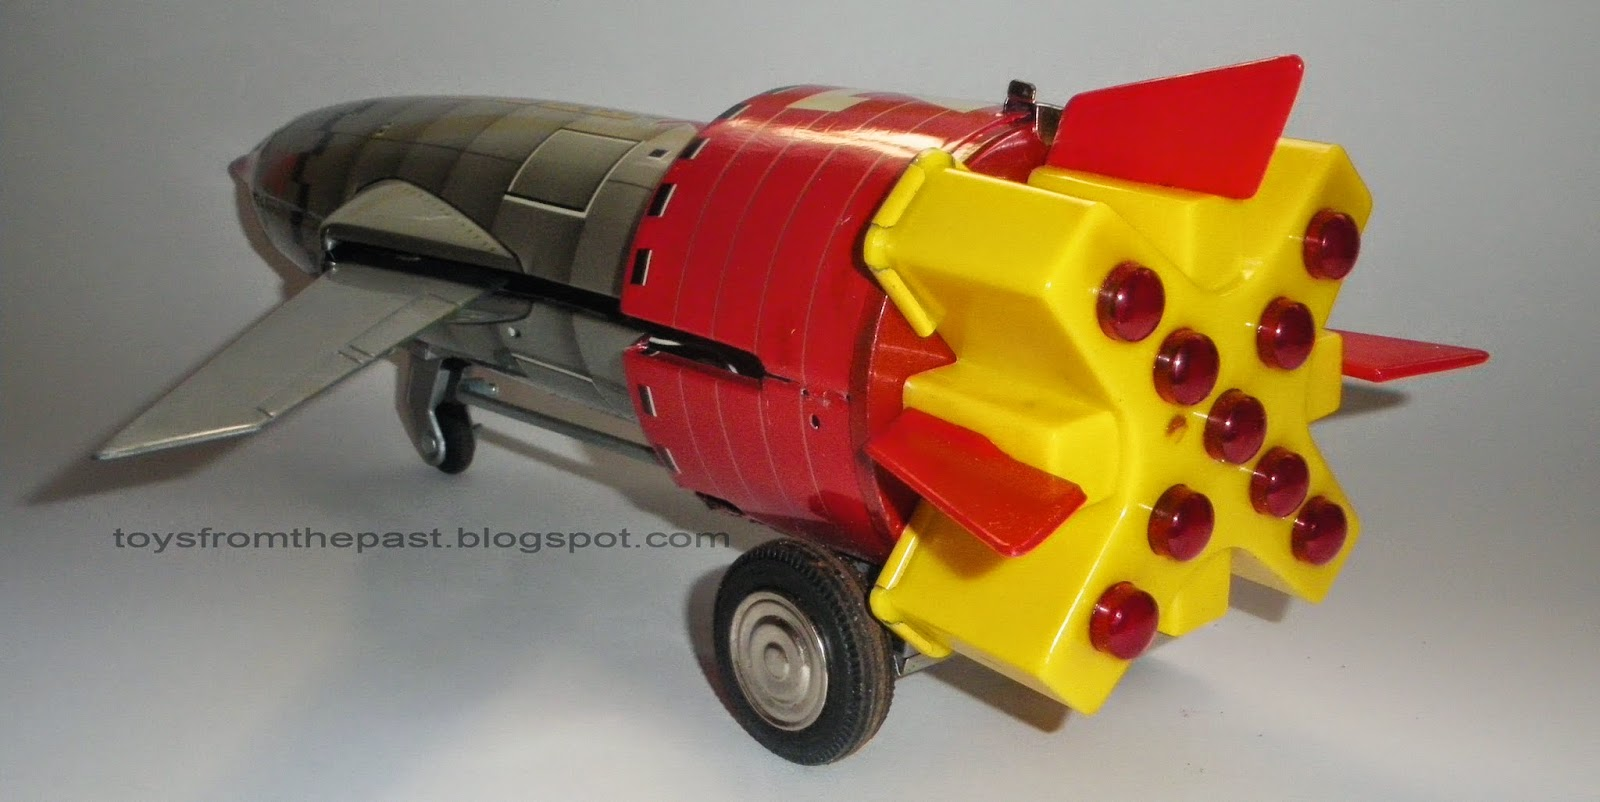 Toys from the Past: #464 NOMURA – SPACE ROCKET SOLAR X (1966)